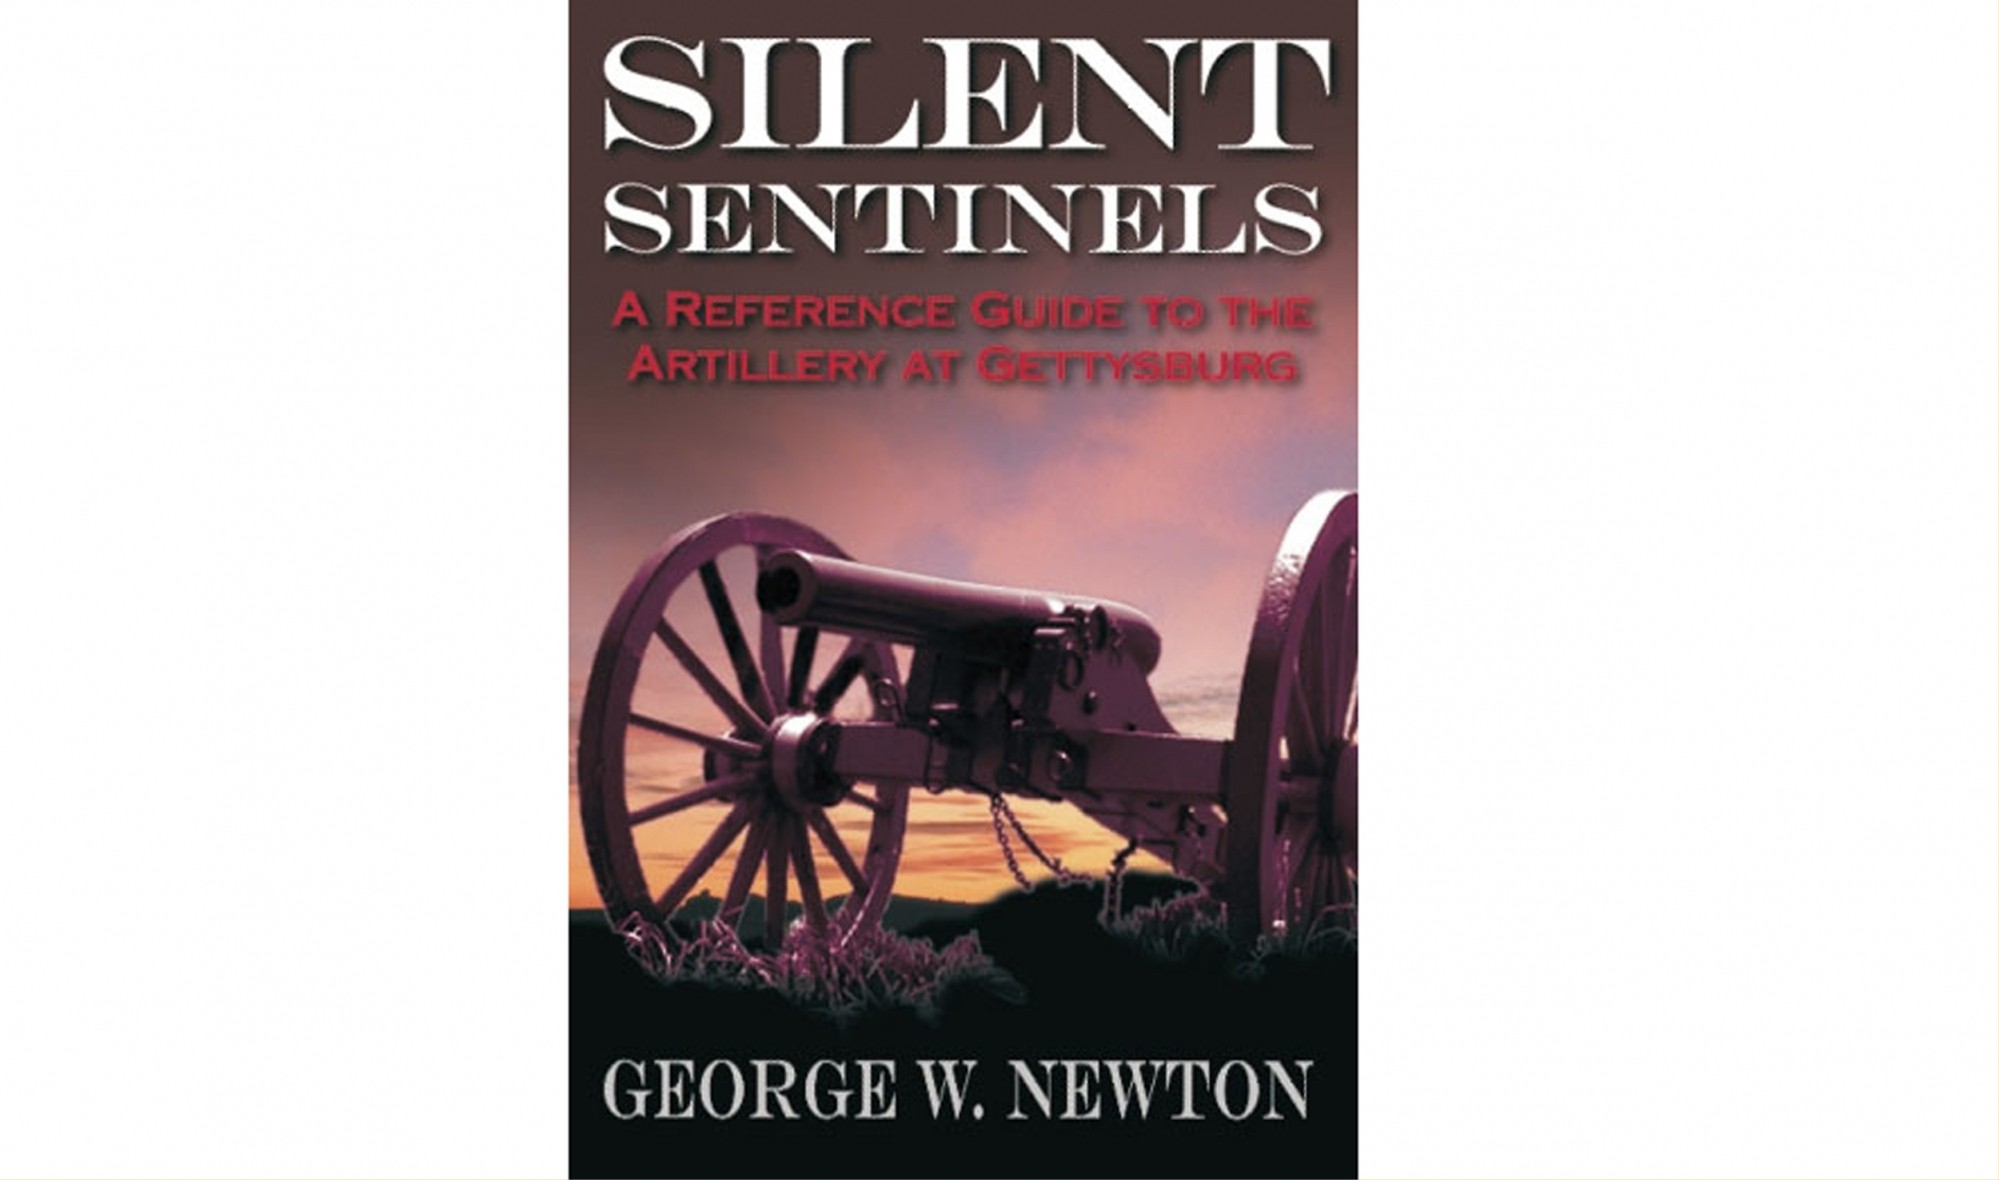 SILENT SENTINELS: A REFERENCE GUIDE TO THE ARTILLEY AT GETTYSBURG